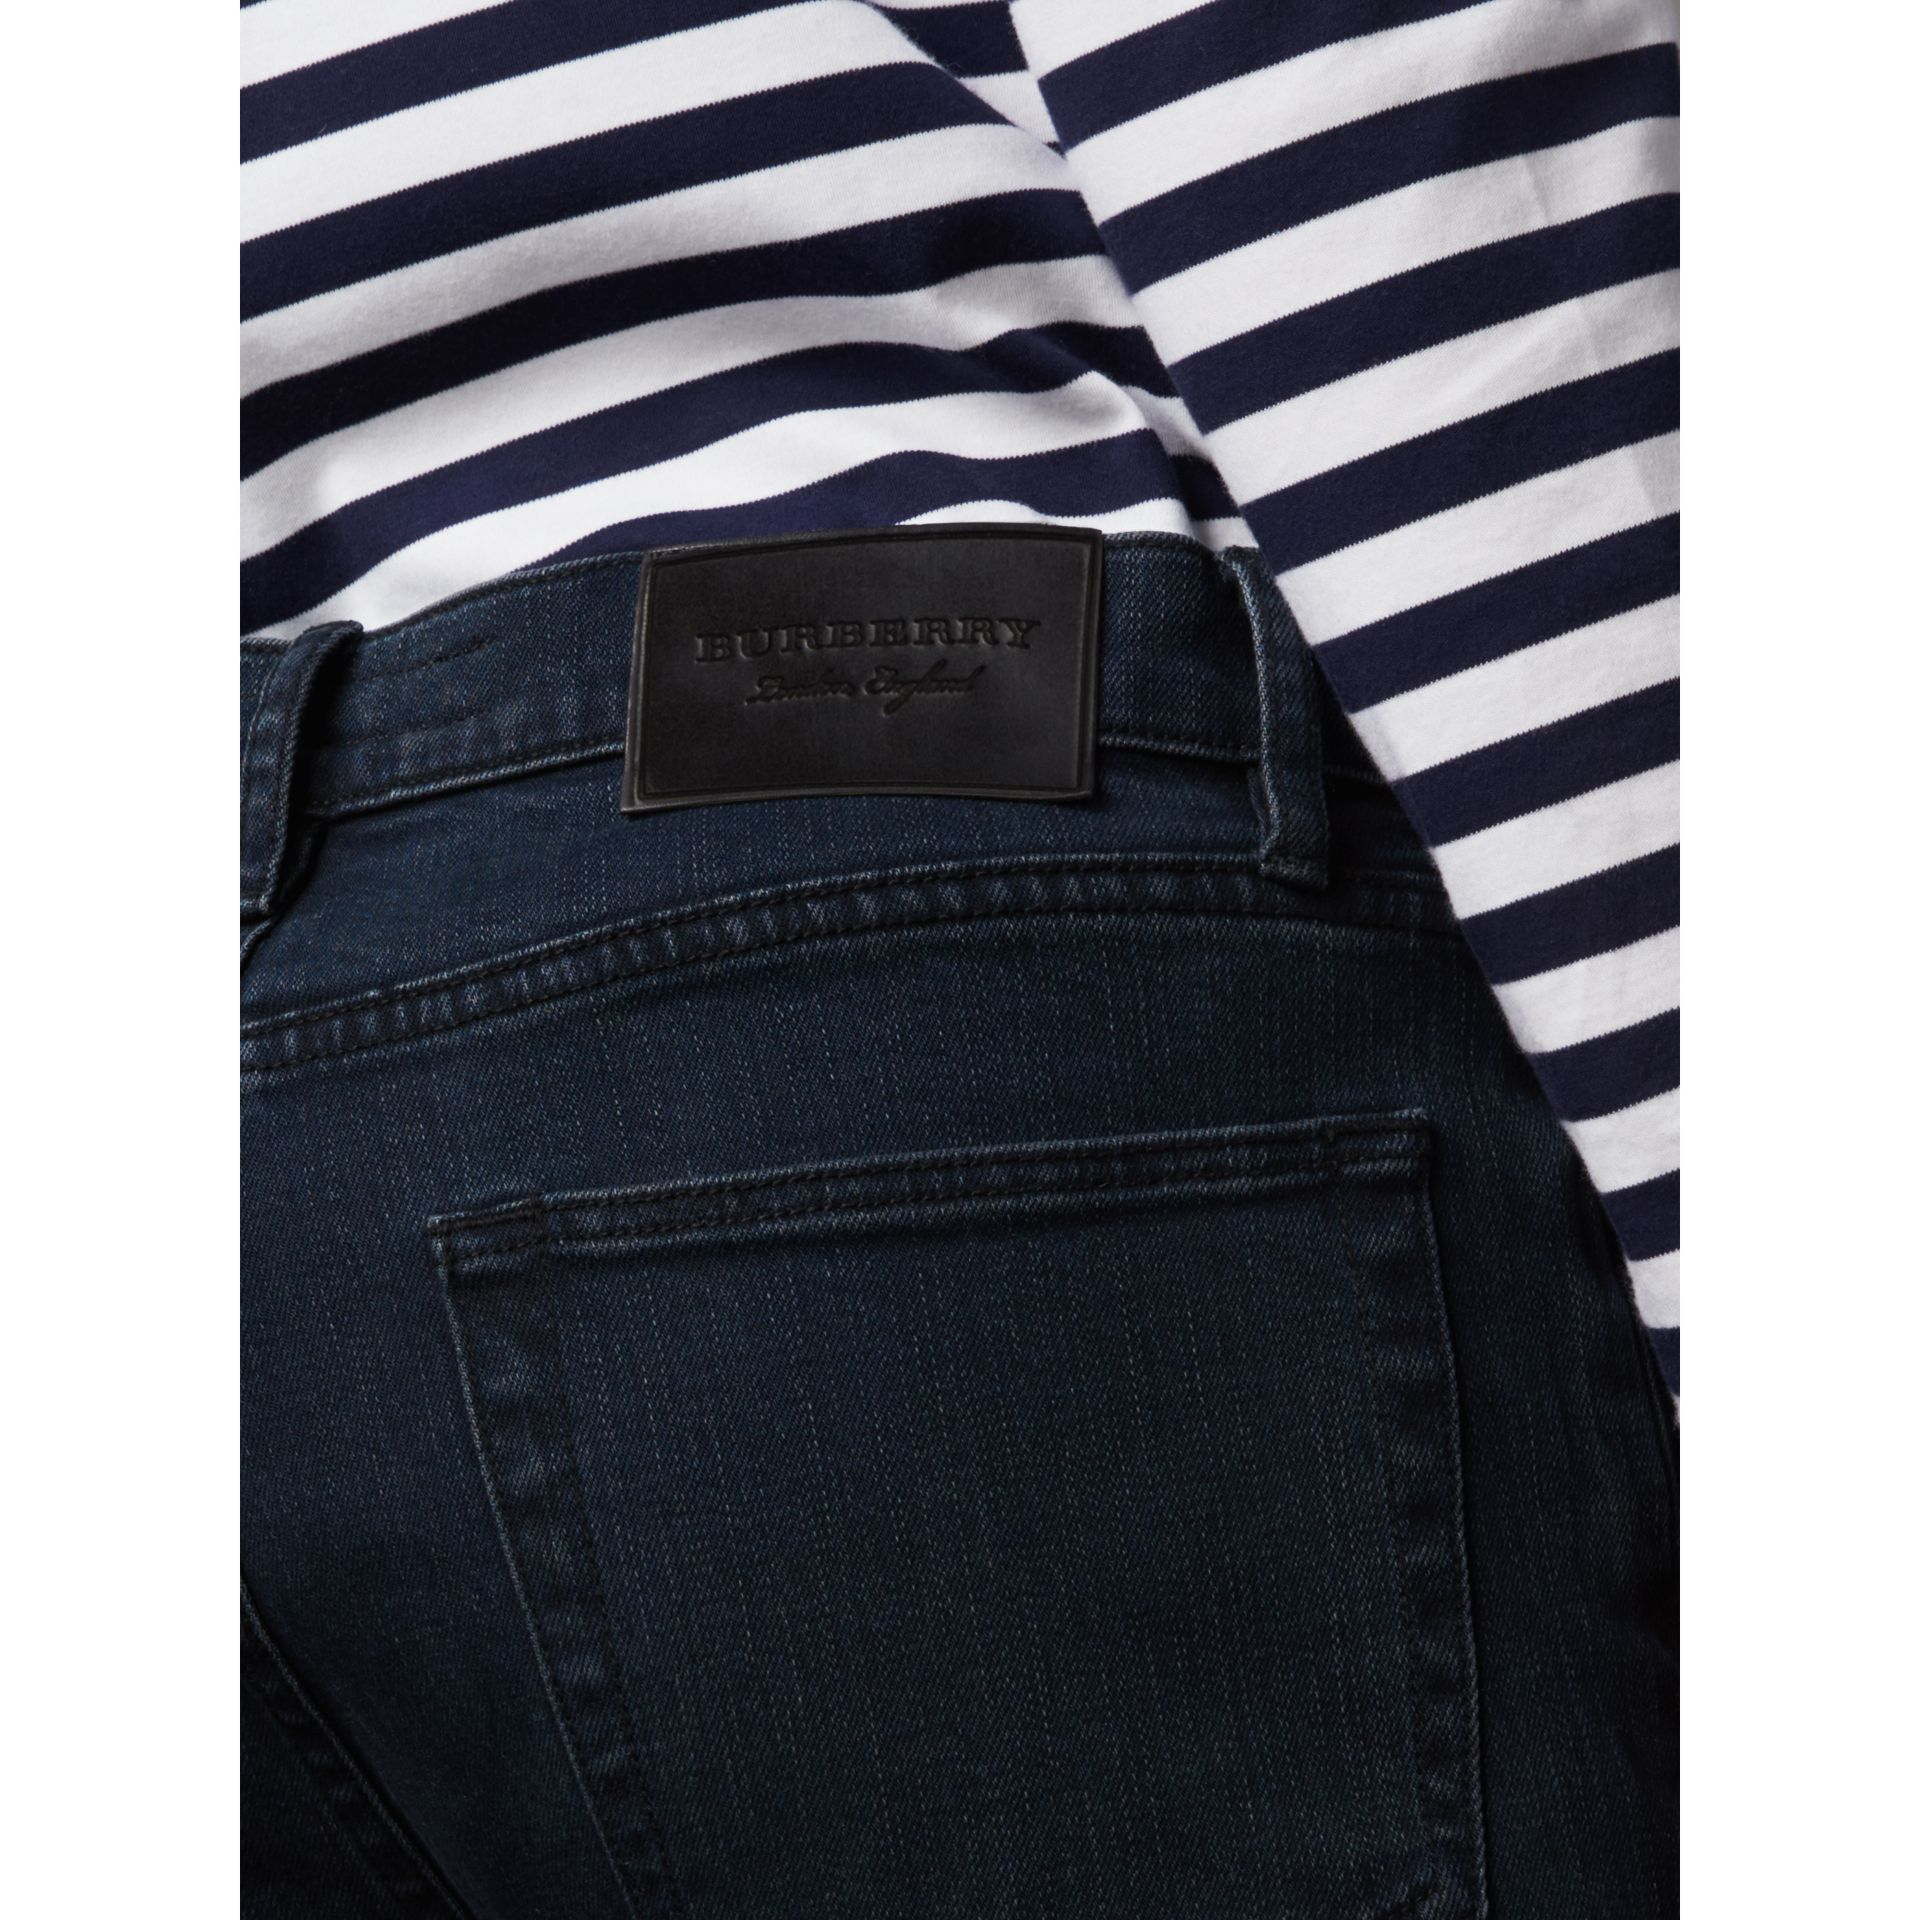 Jean de coupe slim stretch surteint (Indigo Sombre) - Homme | Burberry Canada - photo de la galerie 1